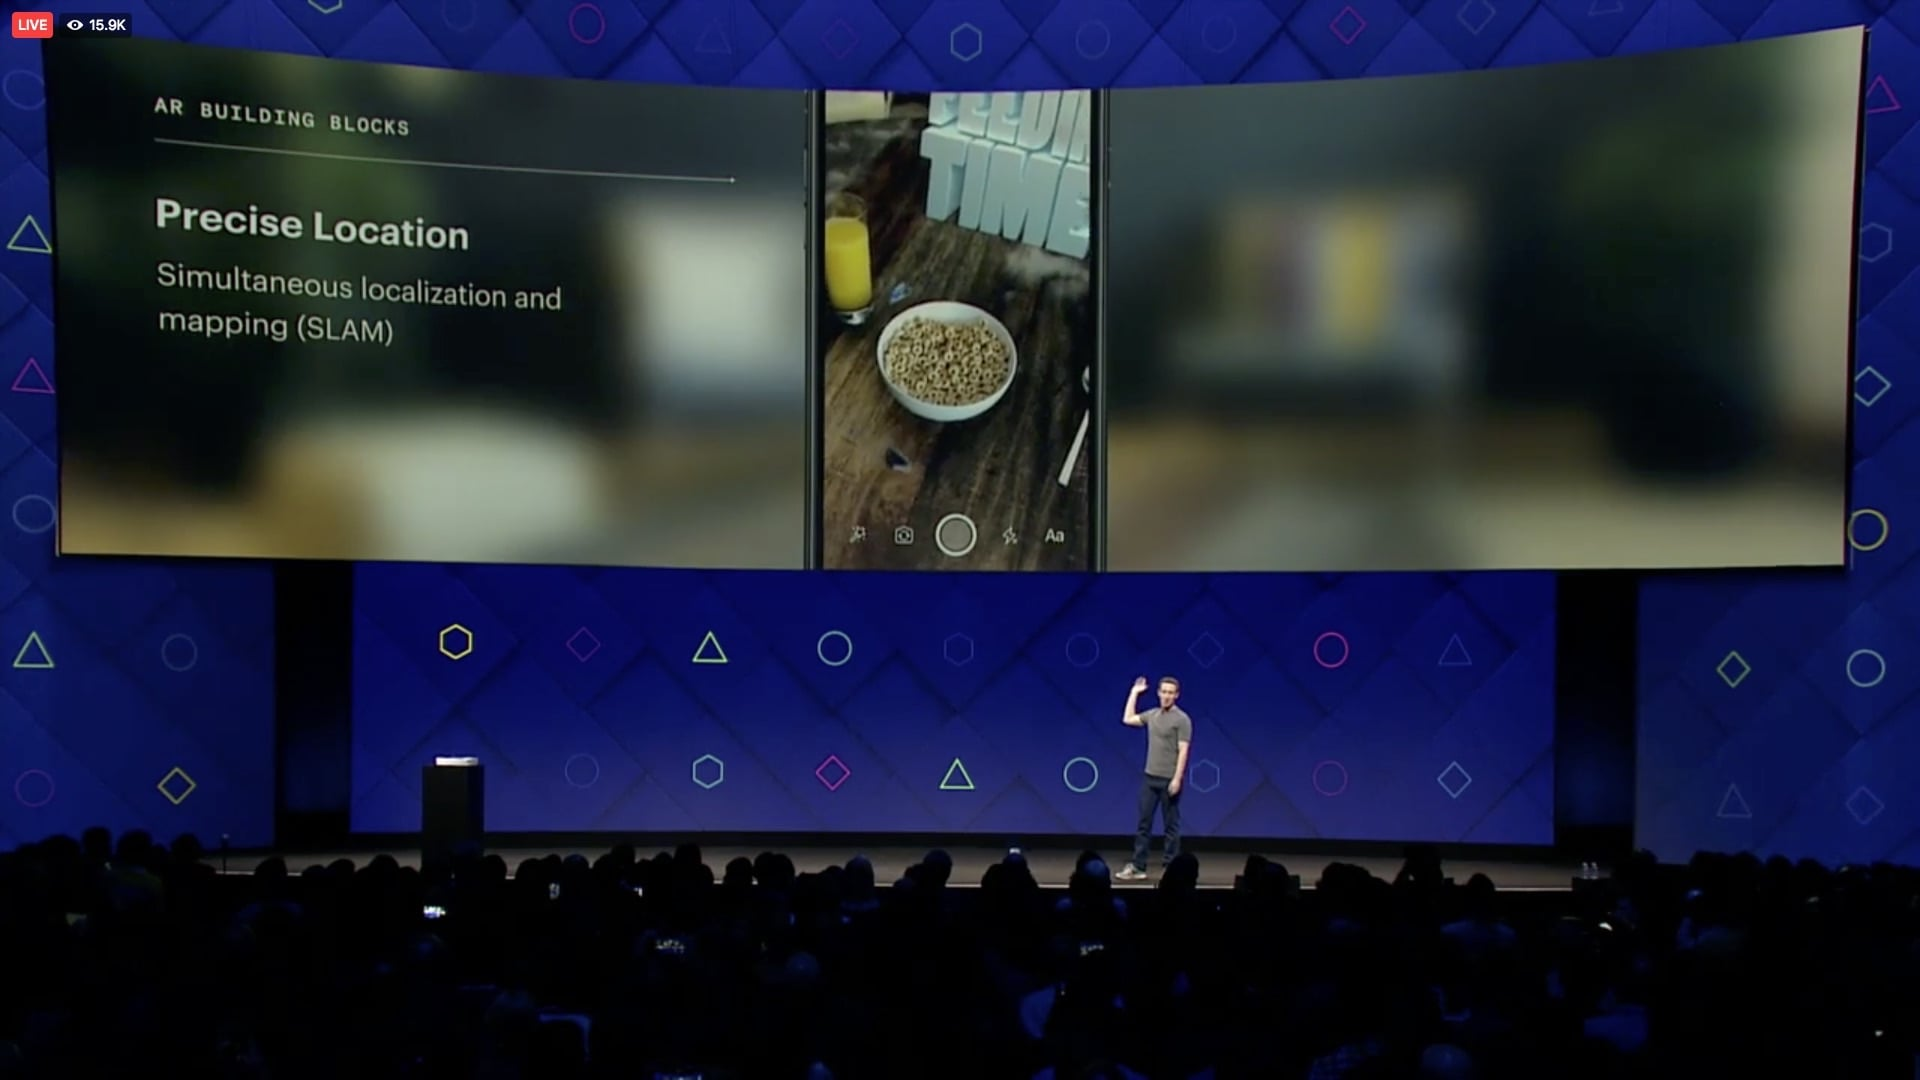 Facebook's Camera Effects Platform - Precise Location